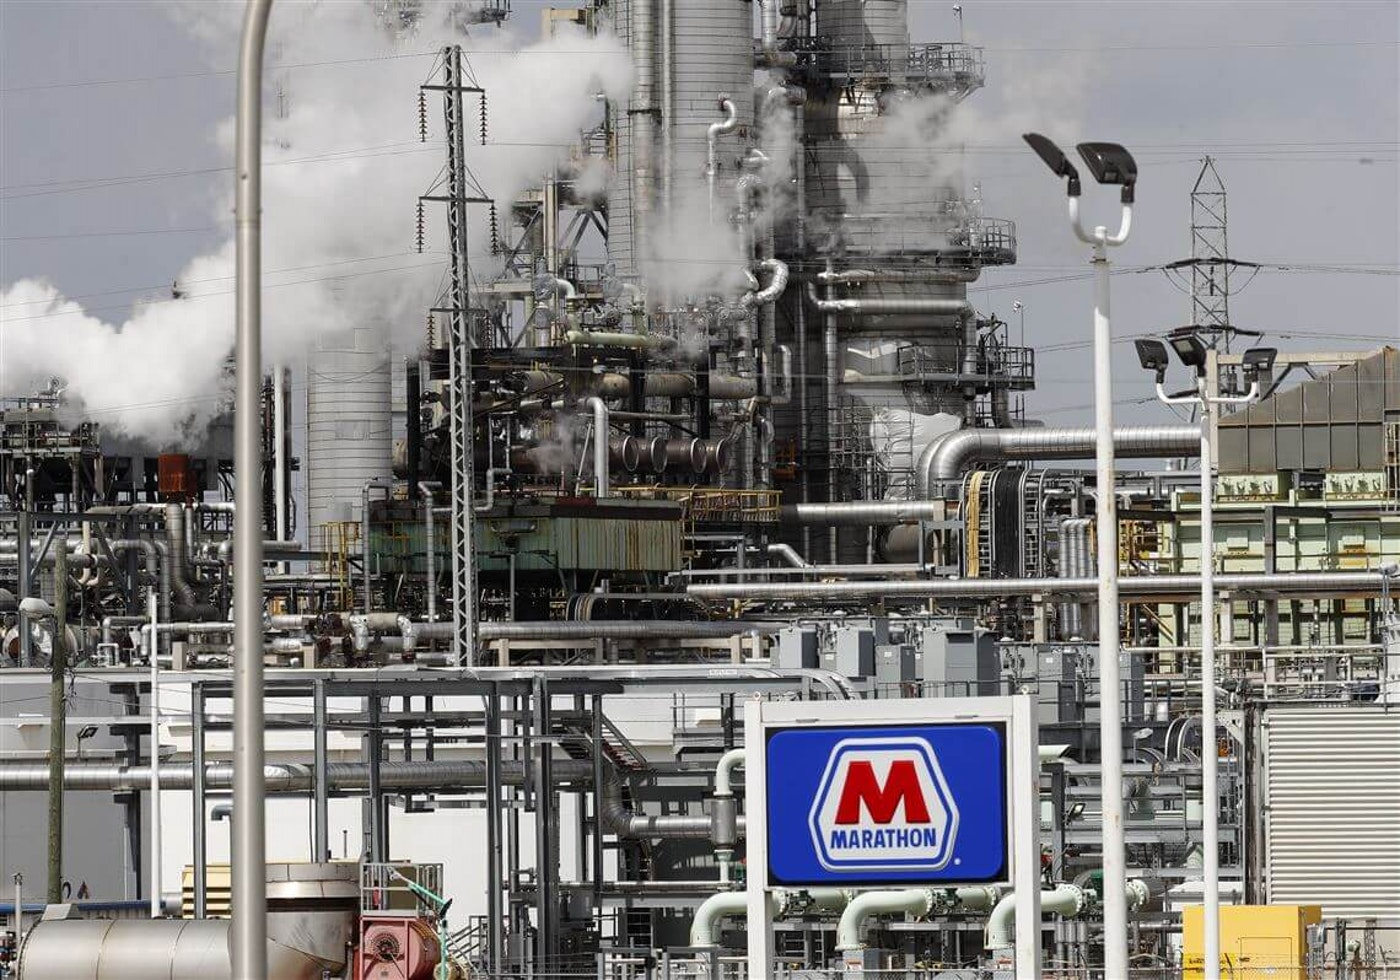 Refinery giant Marathon Petroleum, which operates its Detroit-area refinery in what is now Michigan's most polluted zip code. (AP photo)